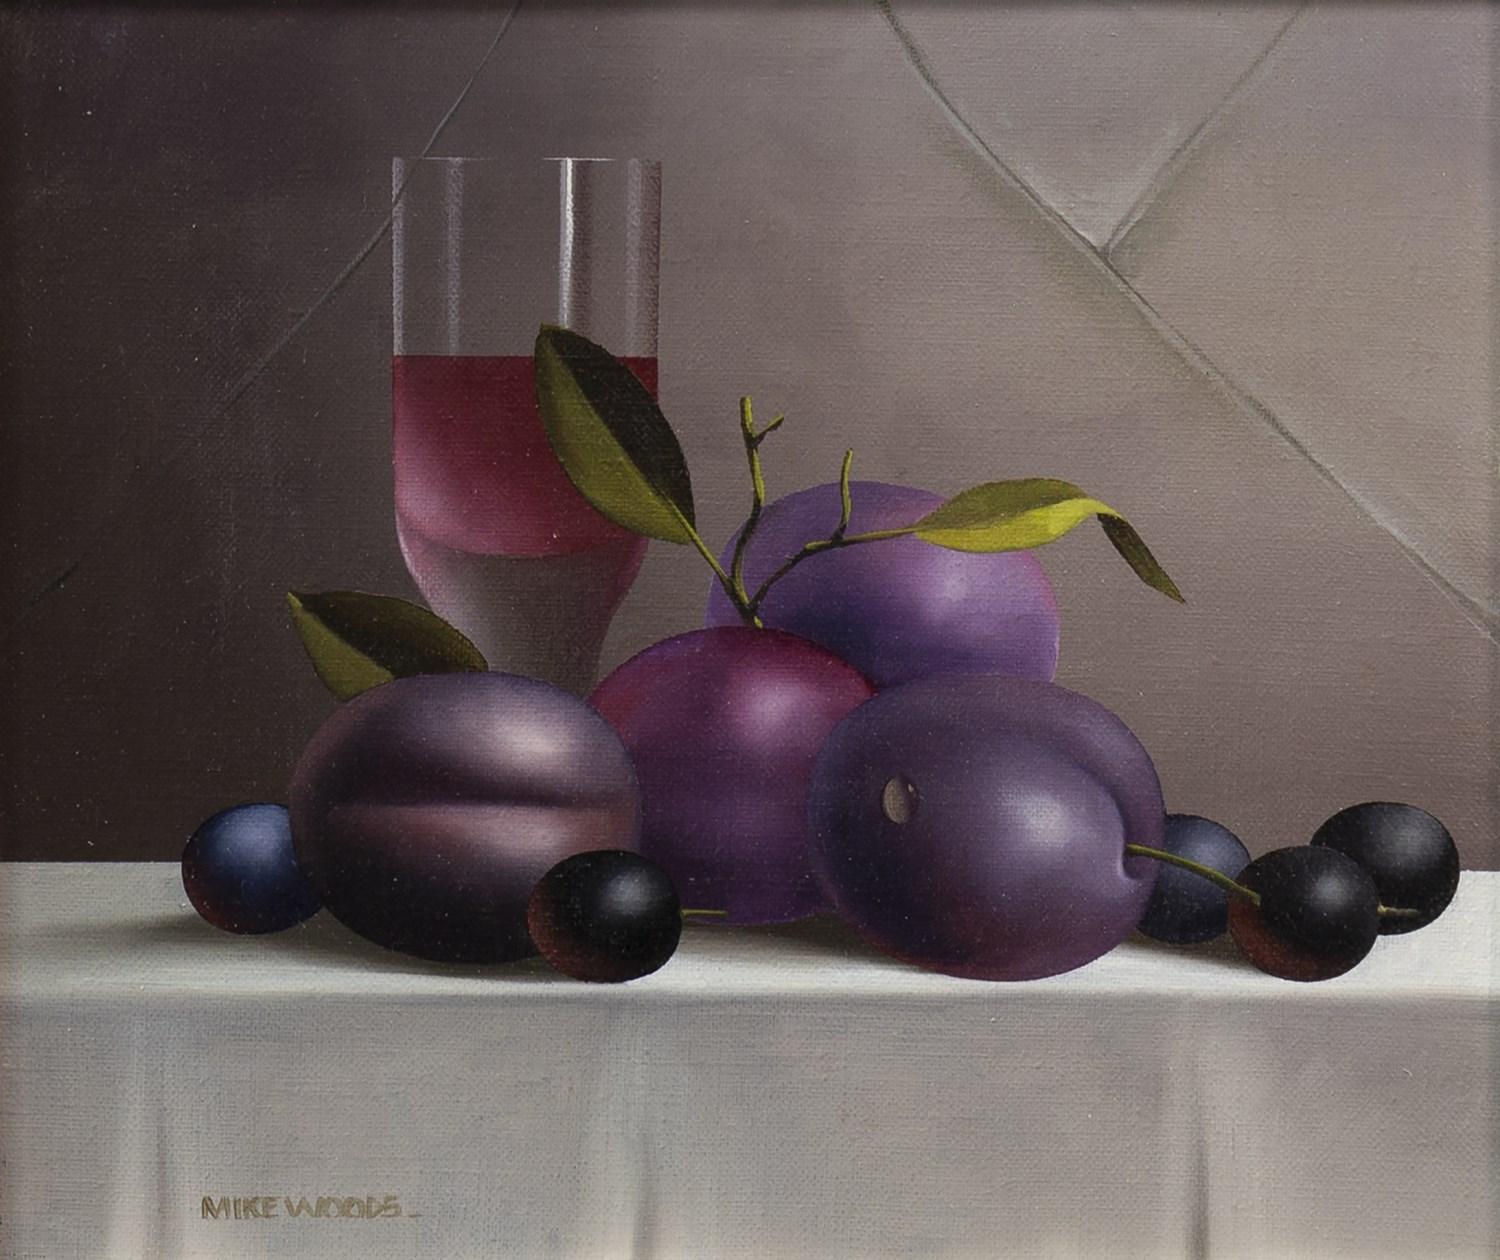 Lot 28 - STILL LIFE WITH PLUMS, GRAPES AND WINE, AN OIL ON CANVAS BY MIKE WOODS